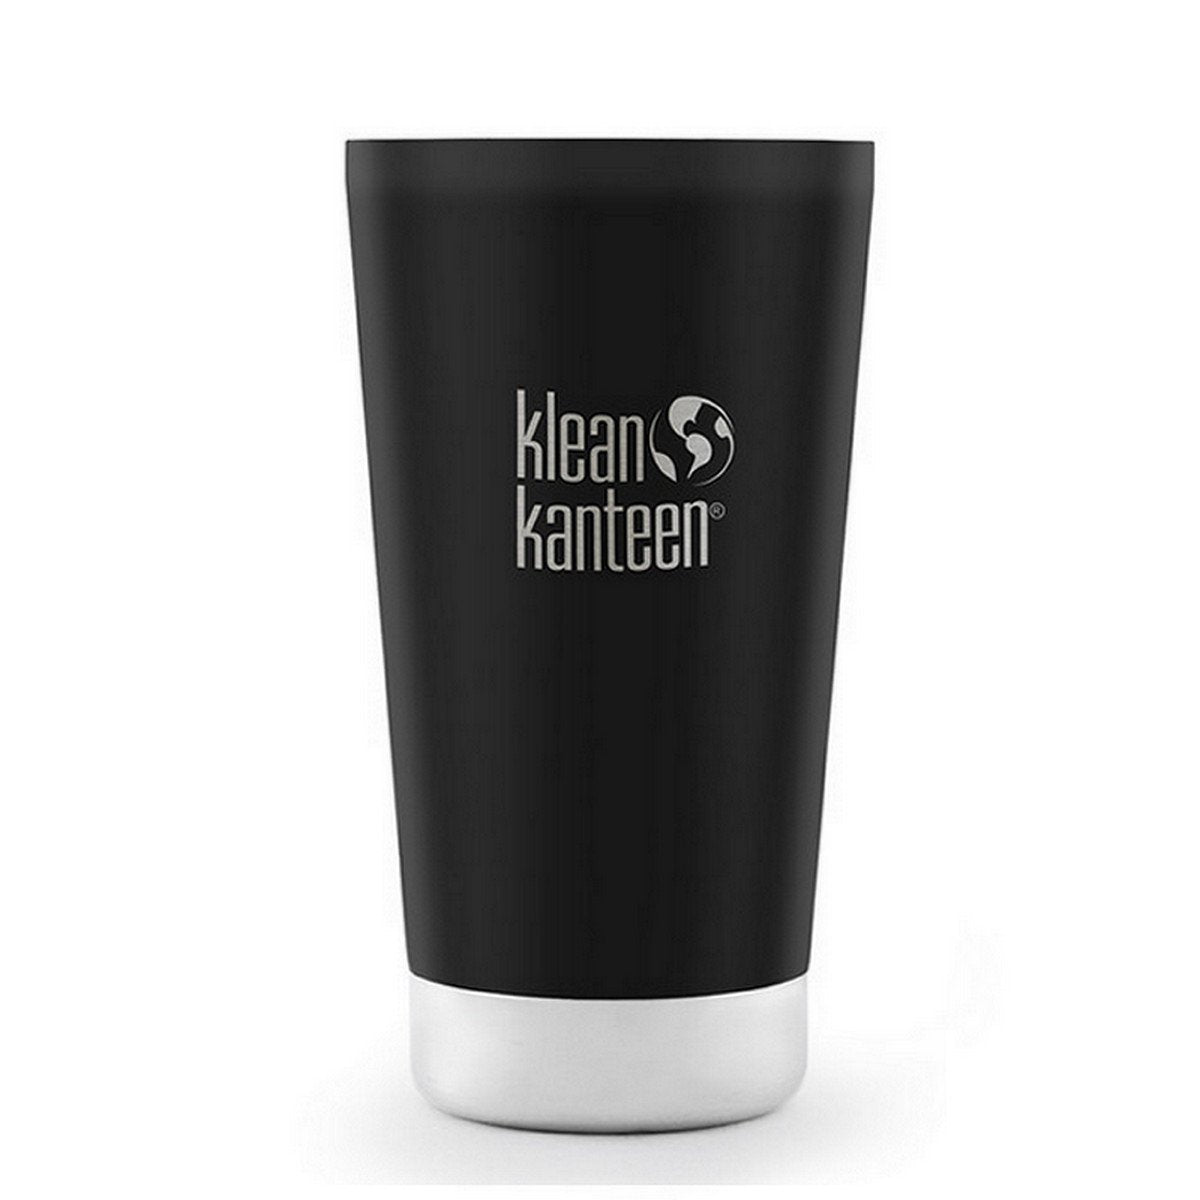 Klean Kanteen 16oz Insulated Tumbler Shale Black